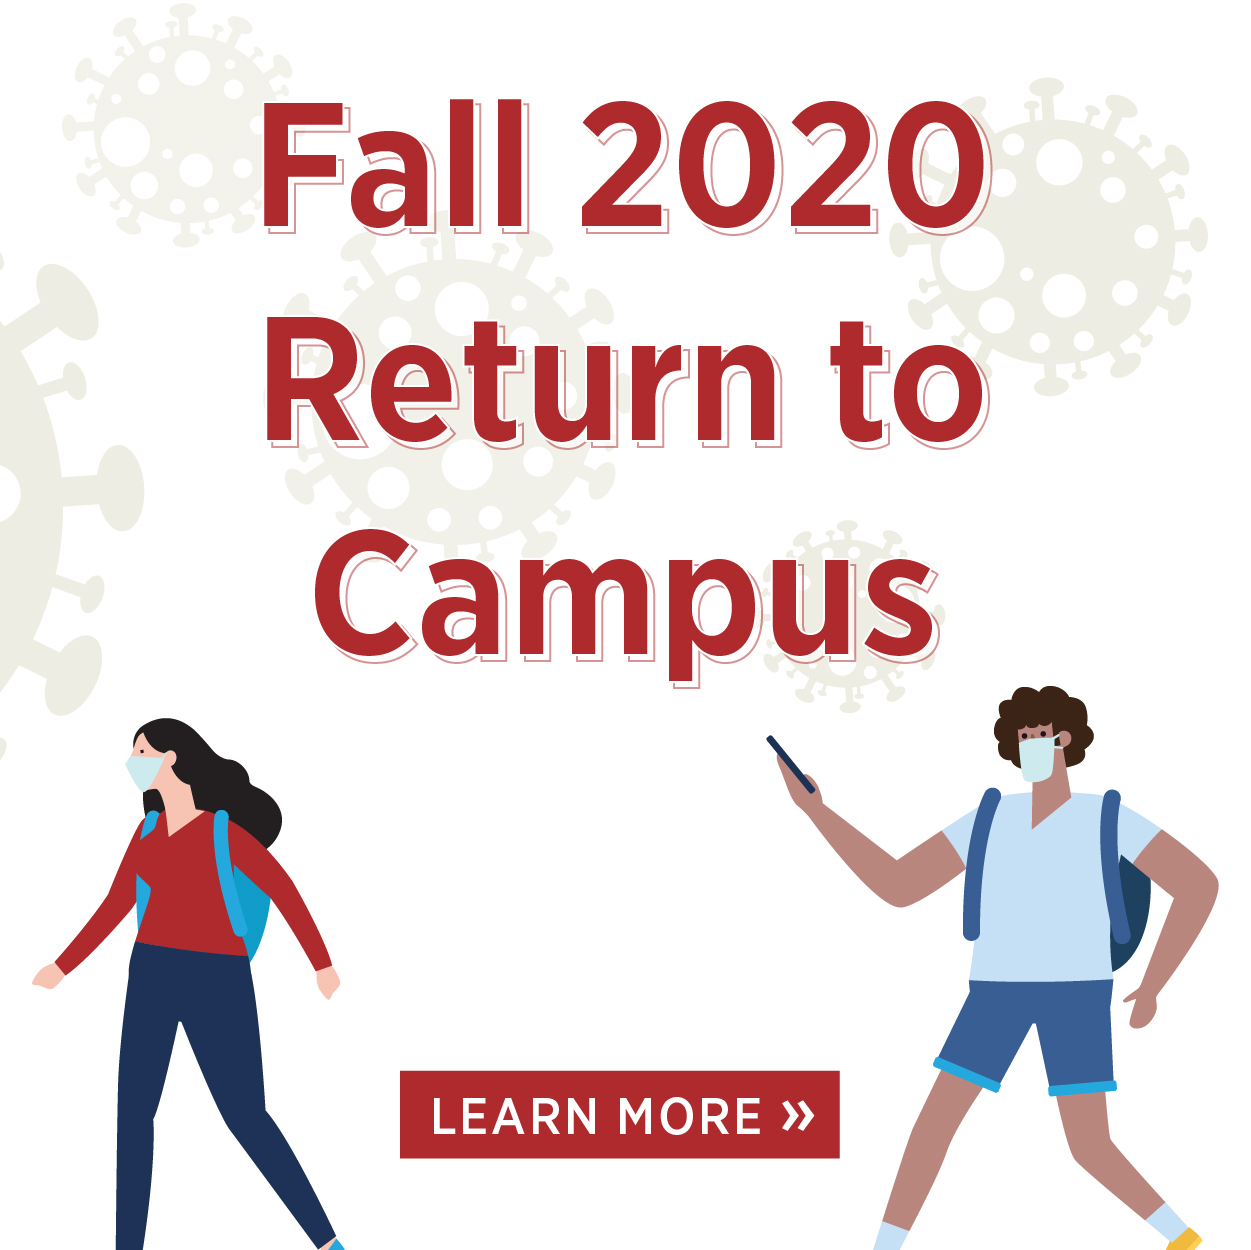 Fall 2020 Return to Campus. Learn More.